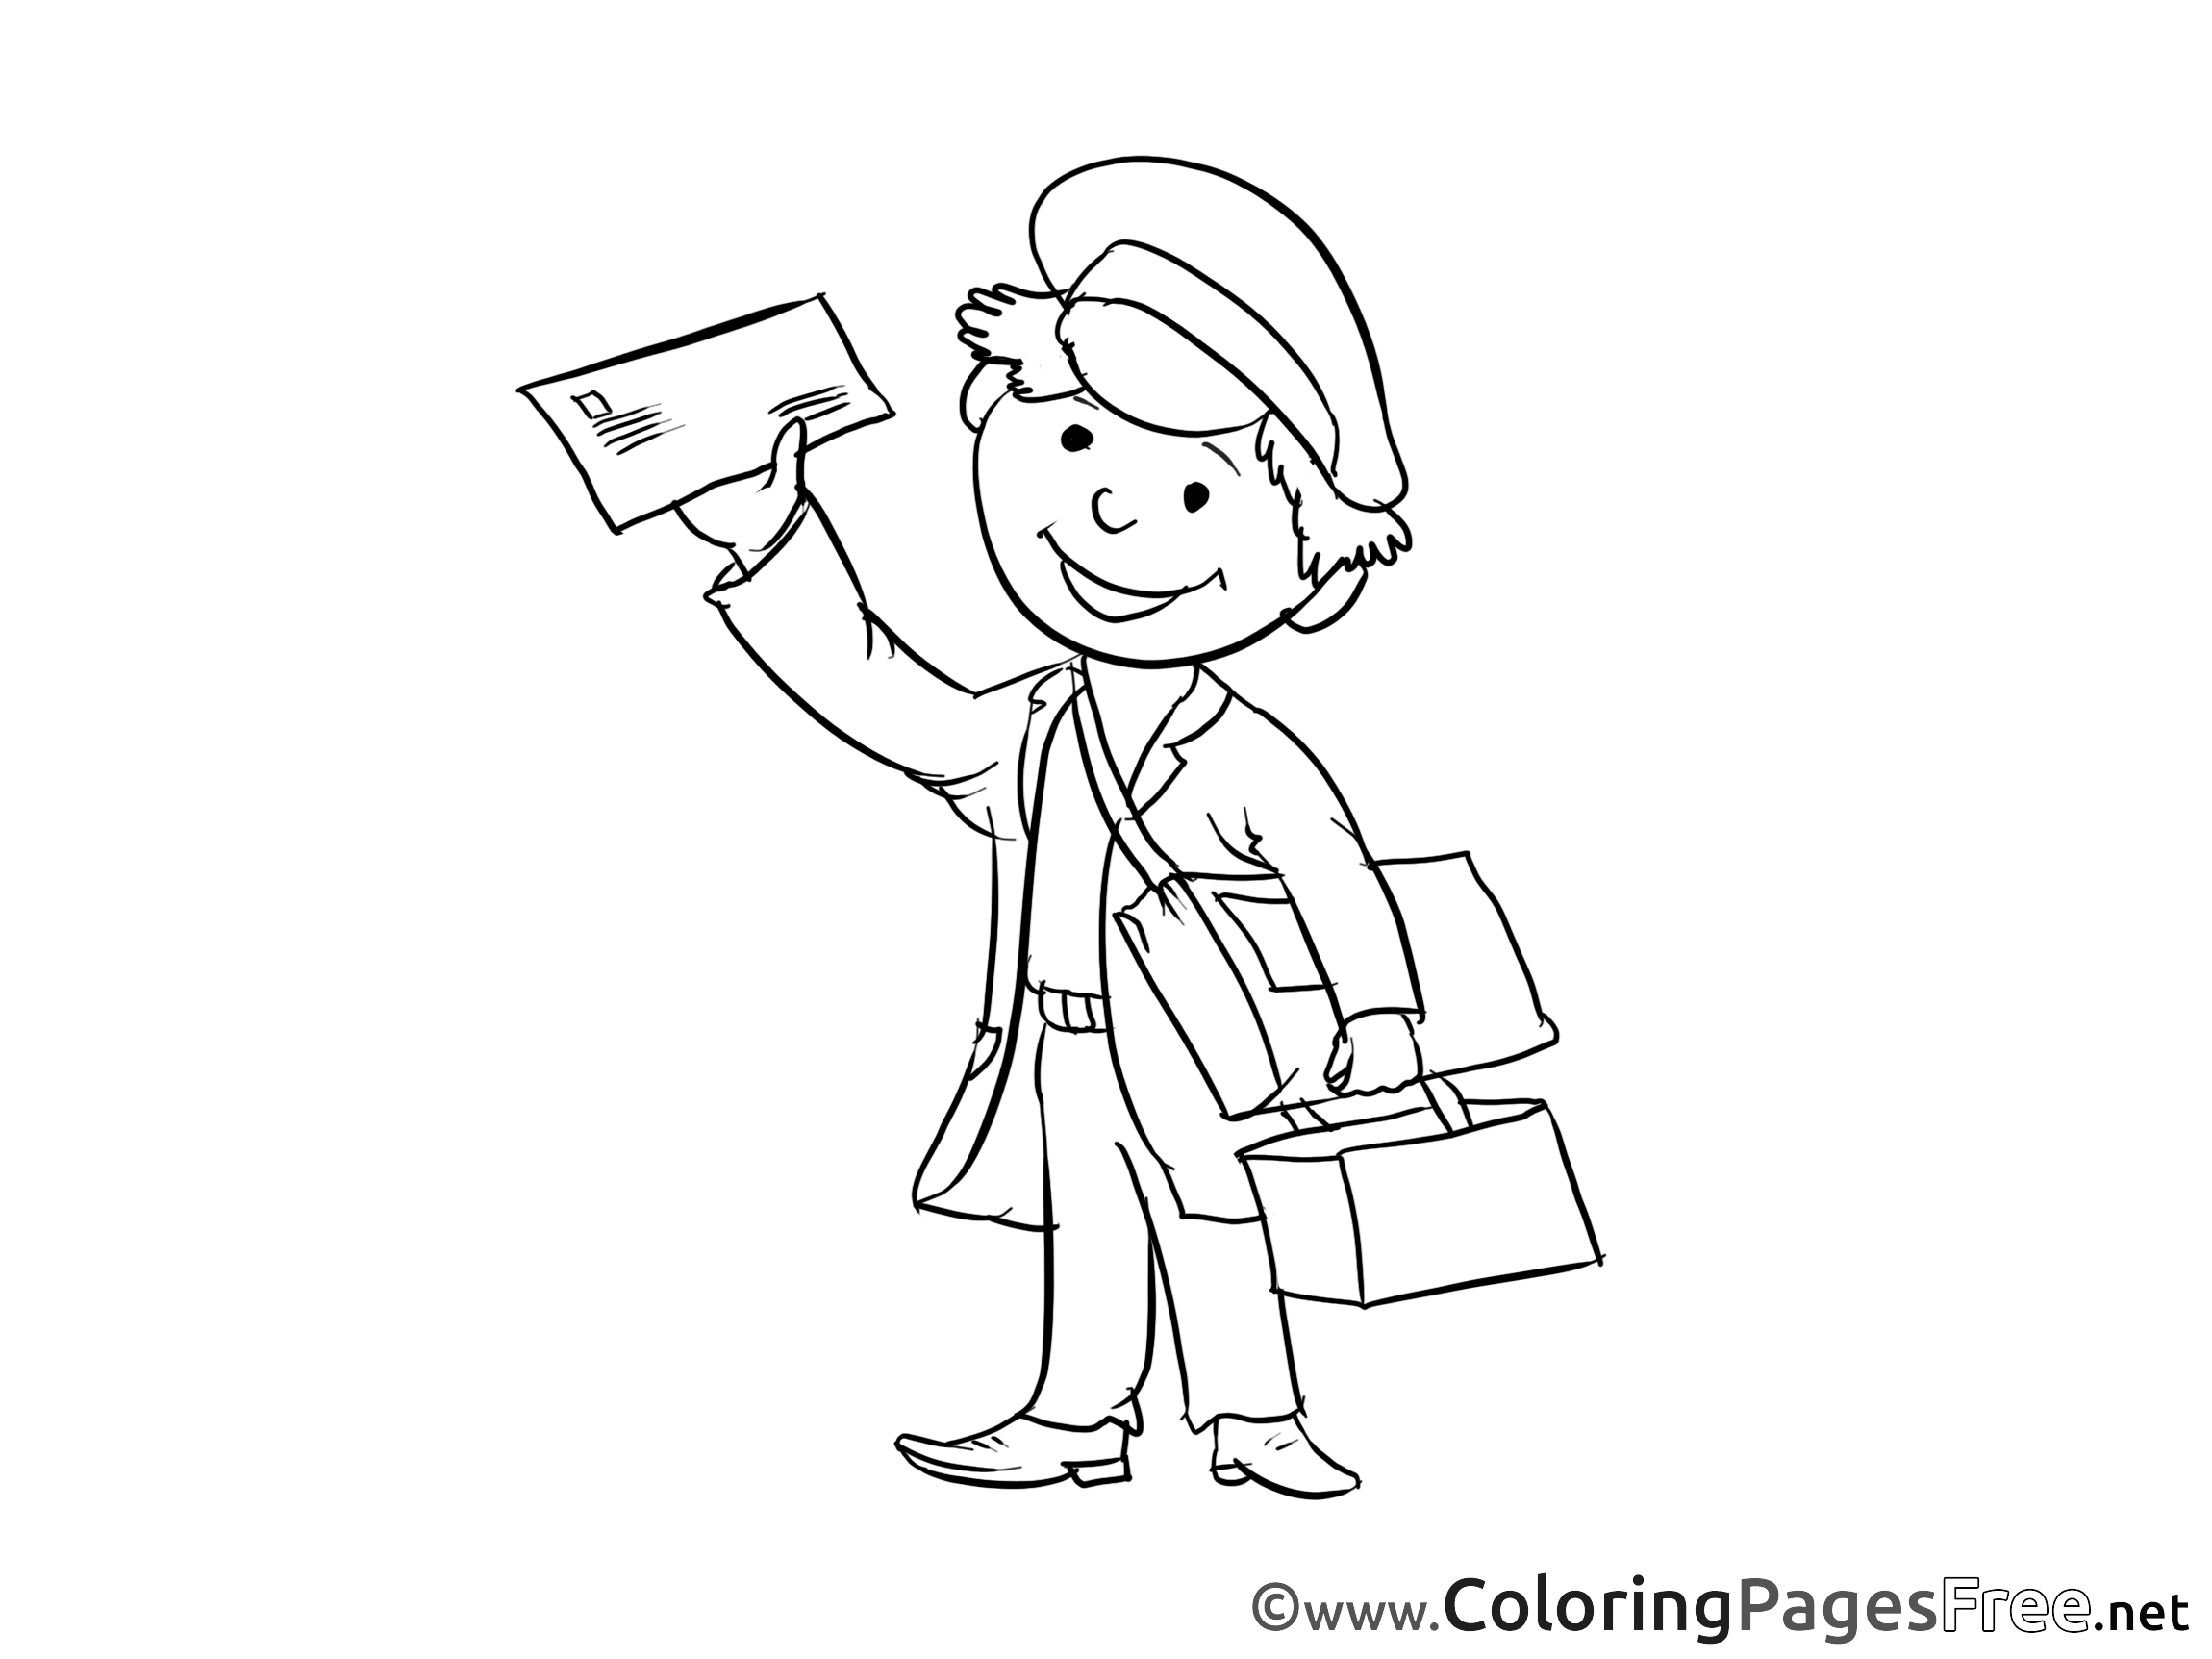 Postman coloring sheets download free for Mailman coloring pages